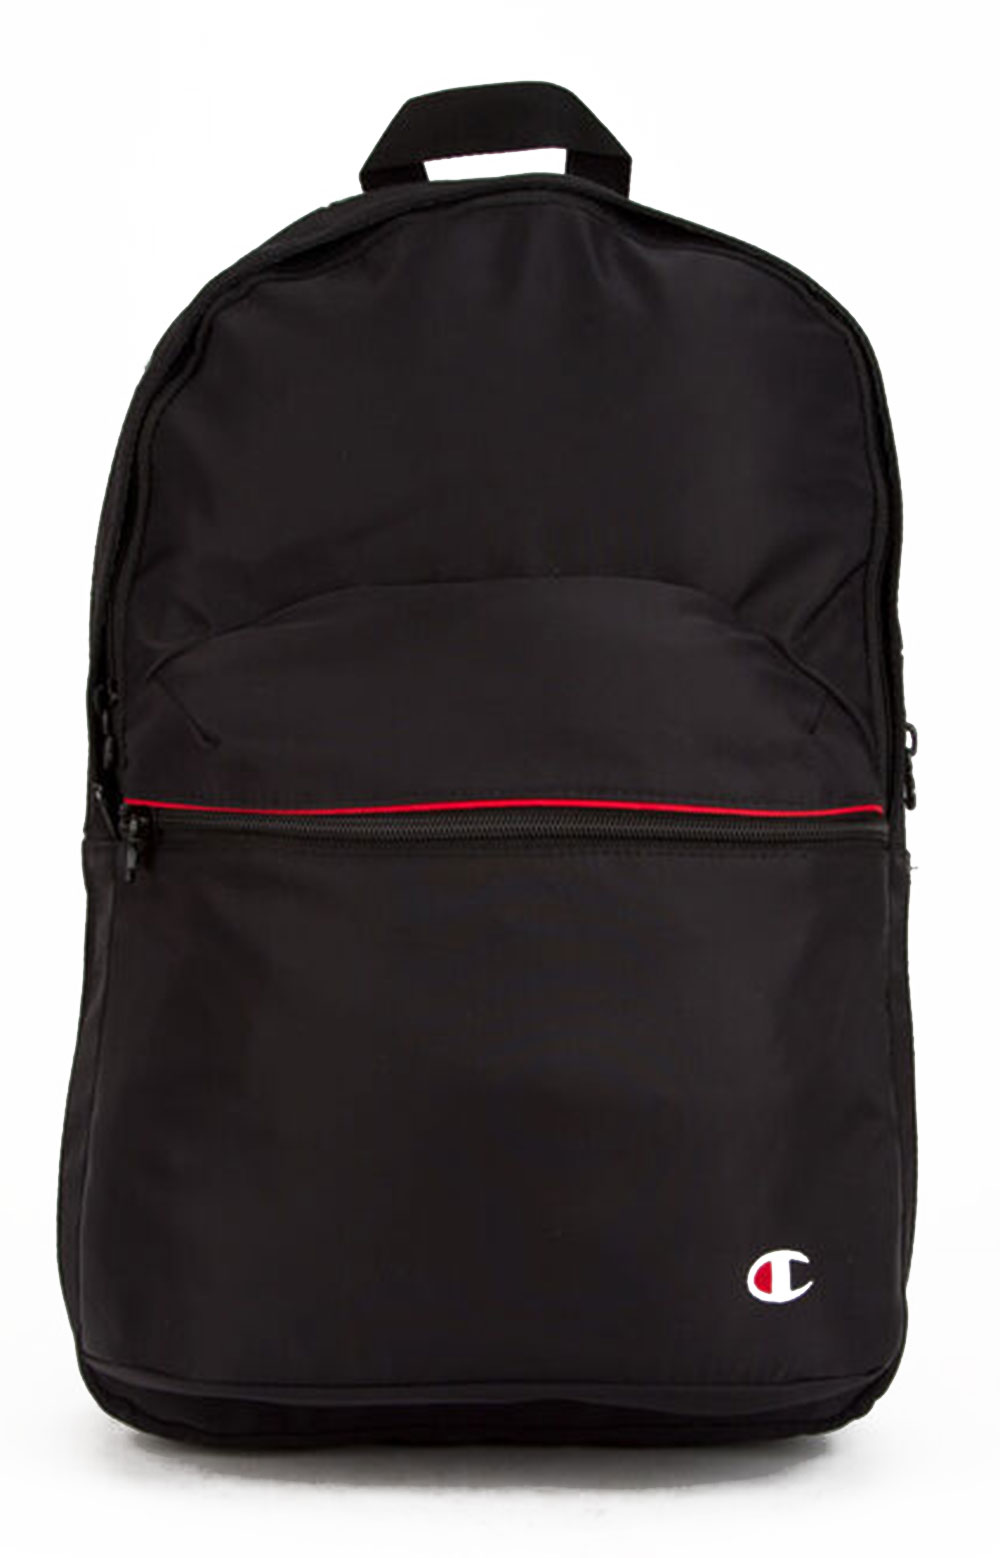 (CH1100) Champion Expander Backpack - Black